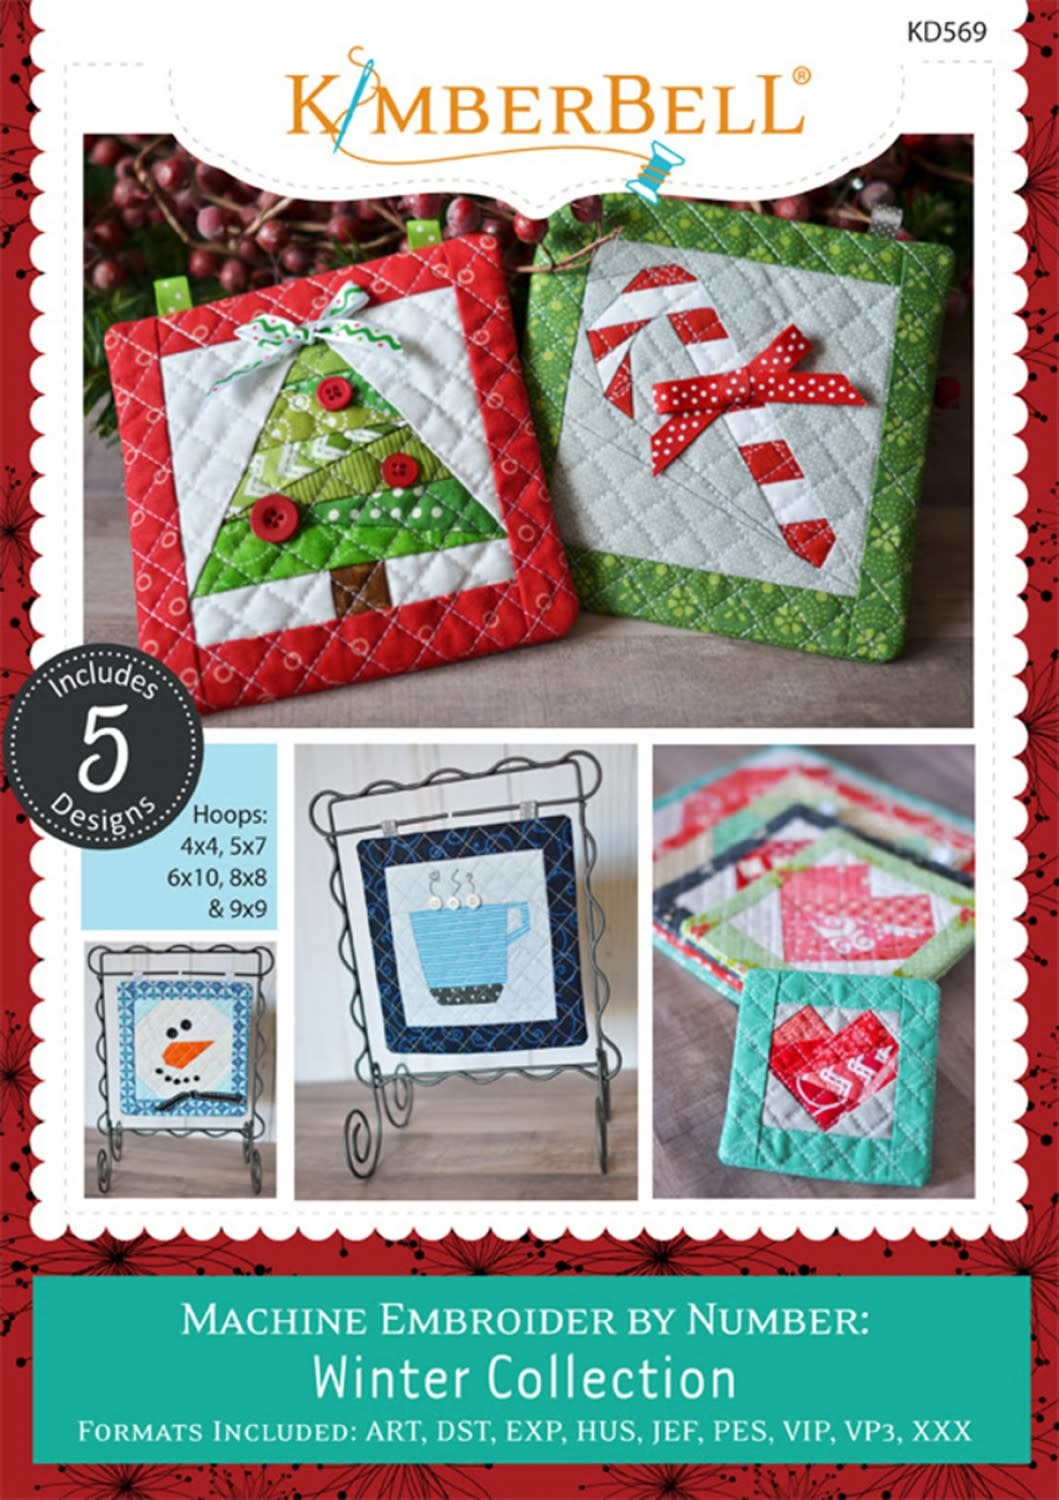 KIMBERBELL DESIGNS Machine Embroider By Number: Winter Collection